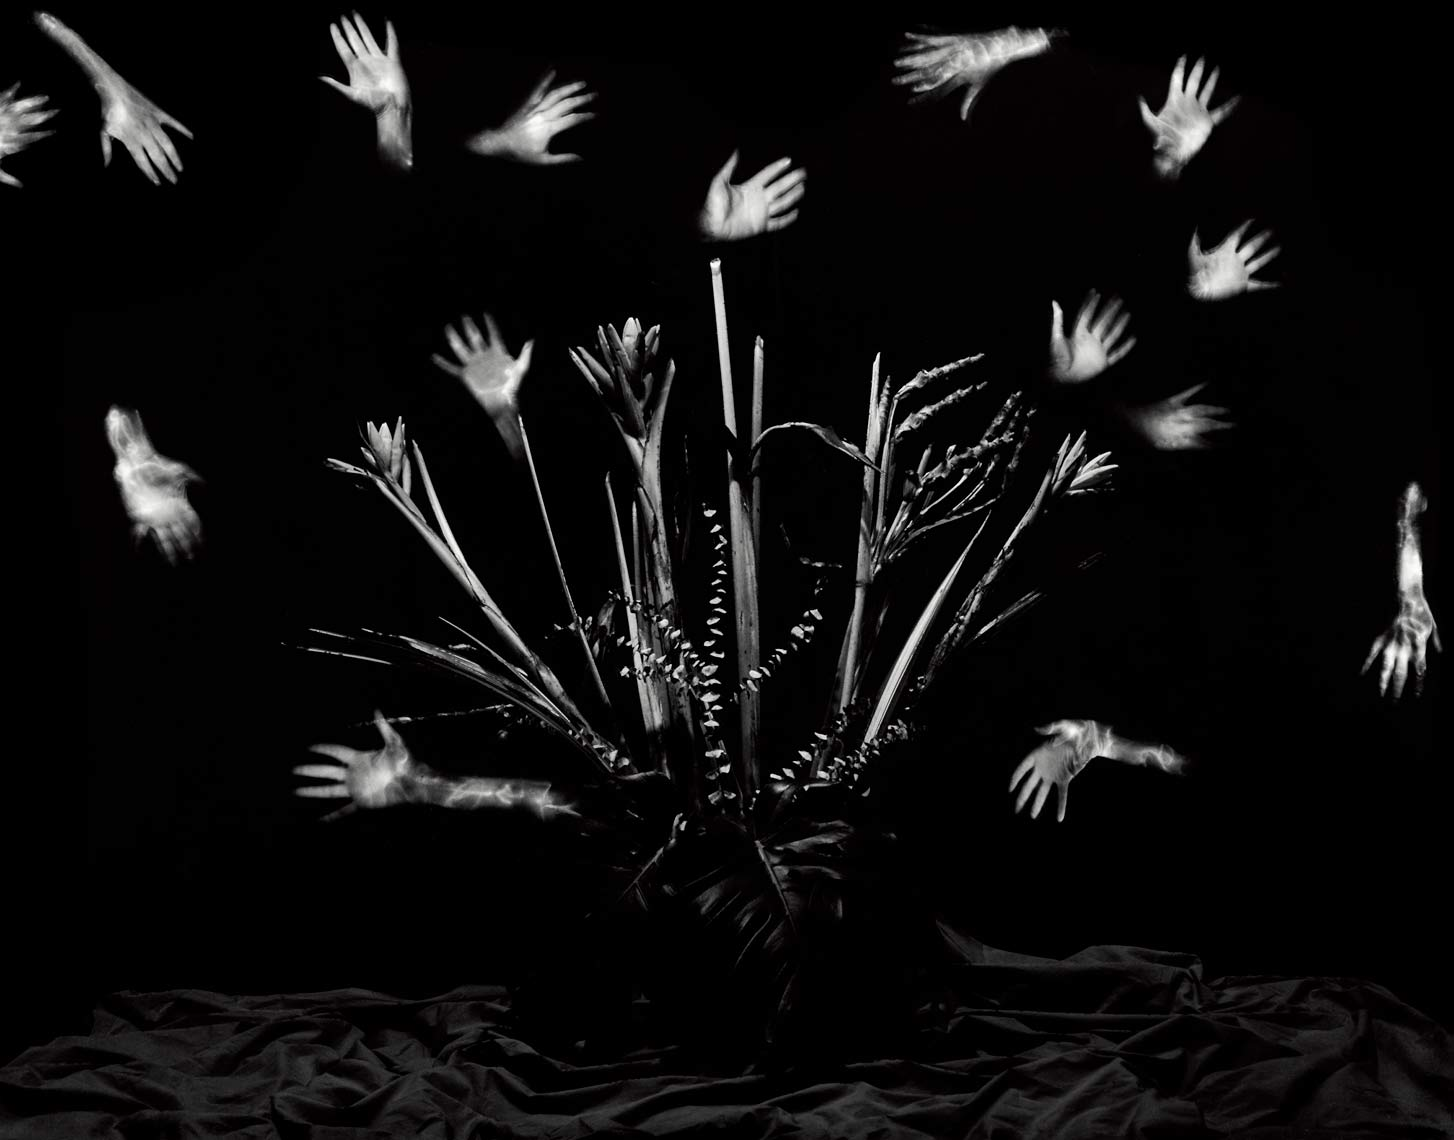 David Lebe; Hands, 1989, light drawing, black and white photograph